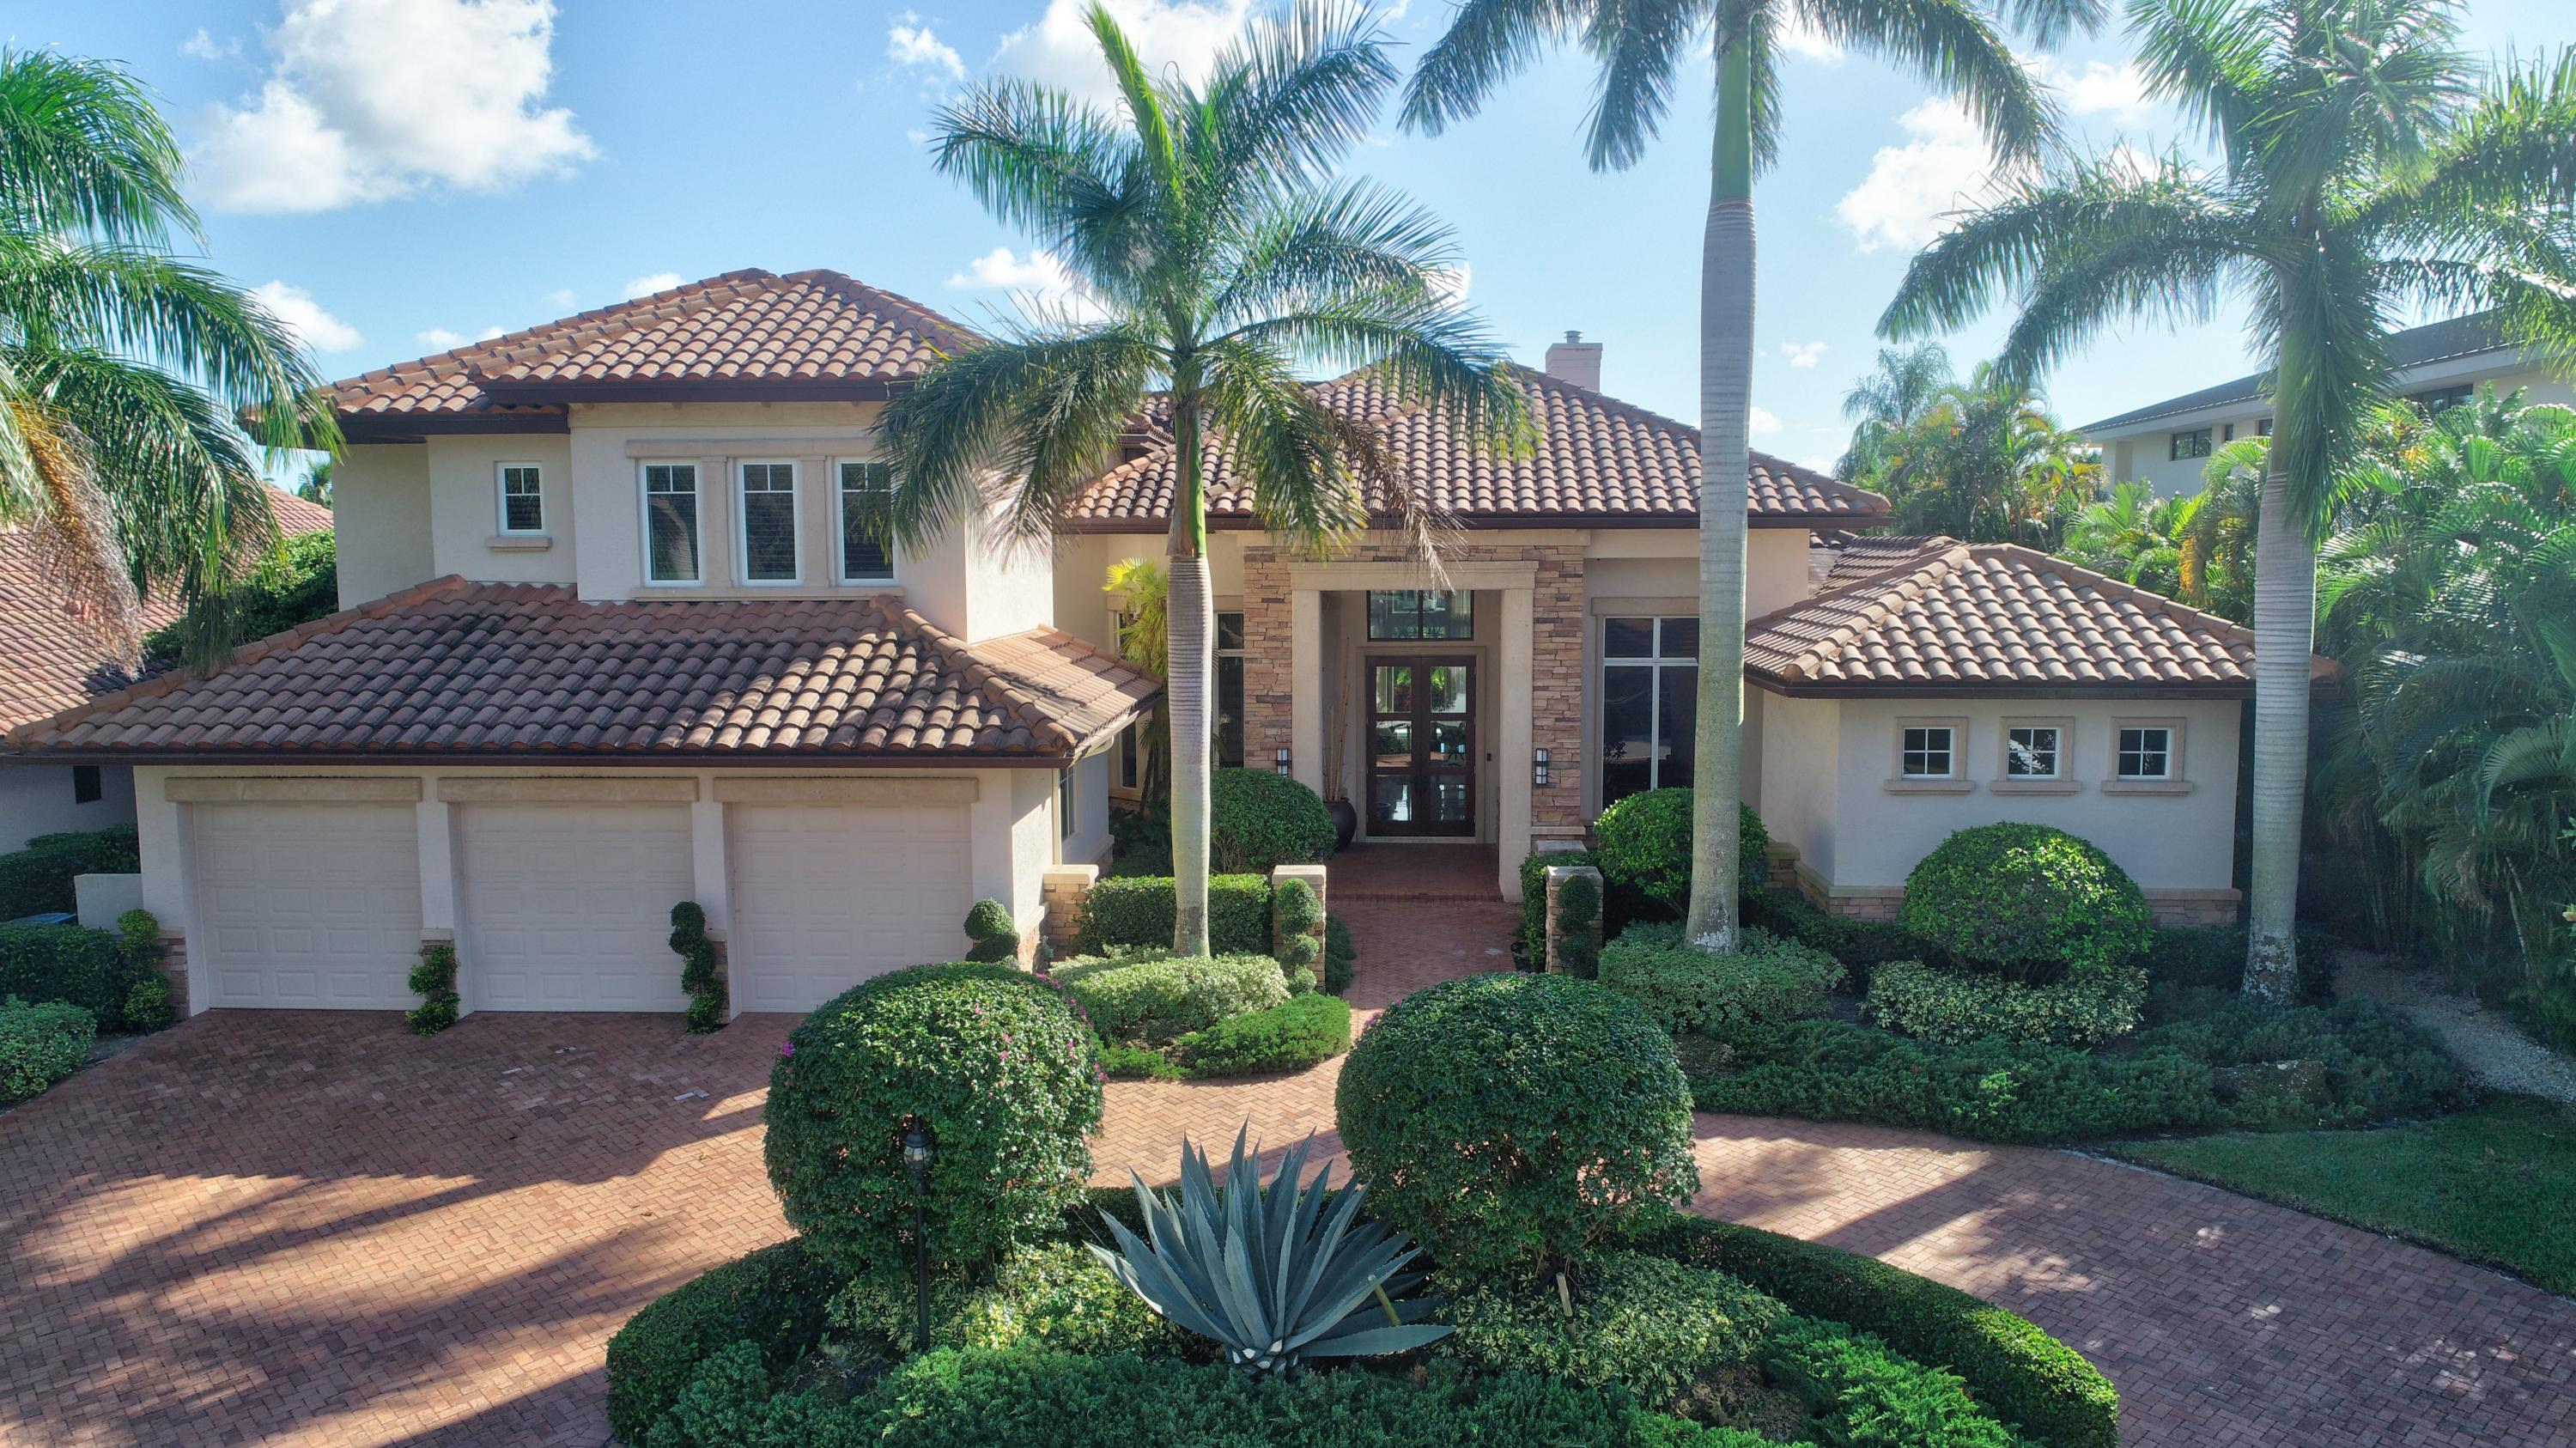 Photo of 7059 Queenferry Circle, Boca Raton, FL 33496